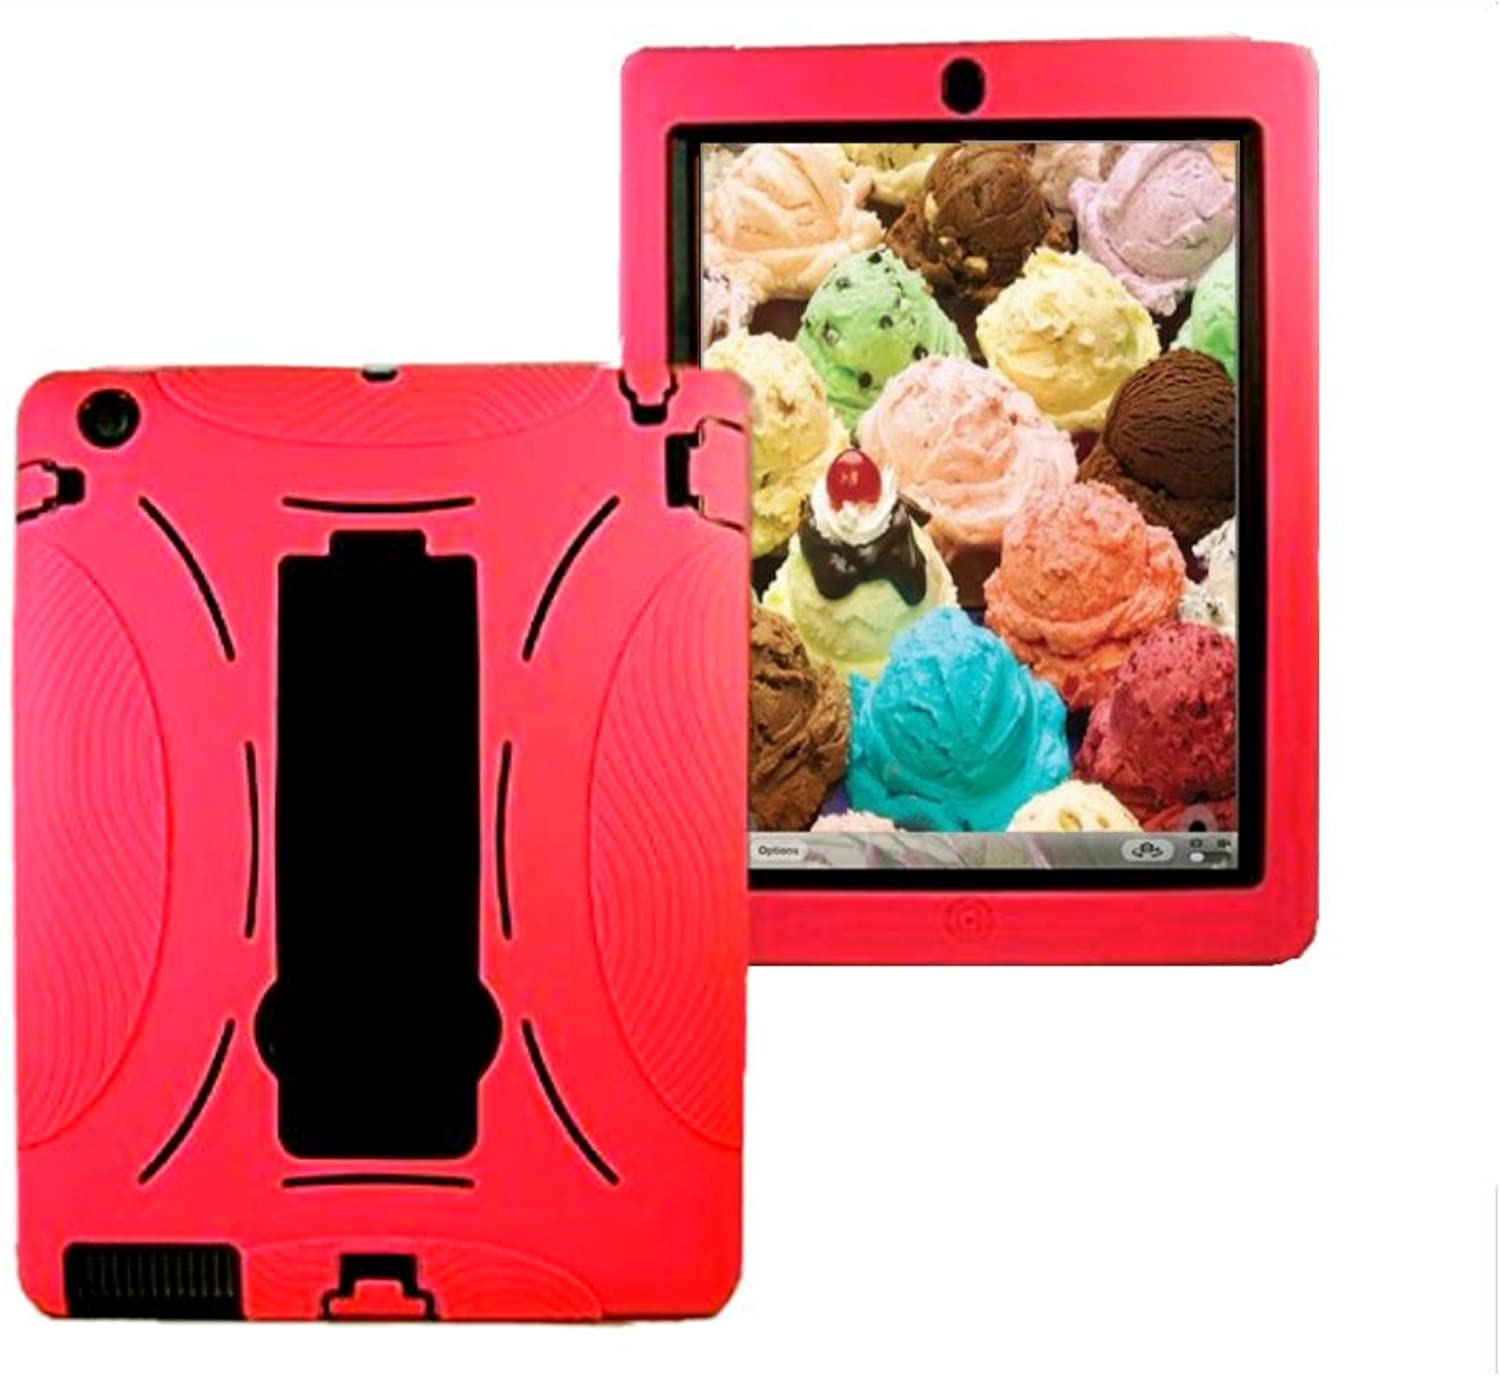 Ipad 2nd, 3rd, 4th Generation case Shell Rugged Shockproof Silicone Protective 3 in 1 Case Cover for ipad 2/3/4 Model : A1397, A1416, A1395, A1396, A1403, A1458, A1460, A1430 (Red Black)